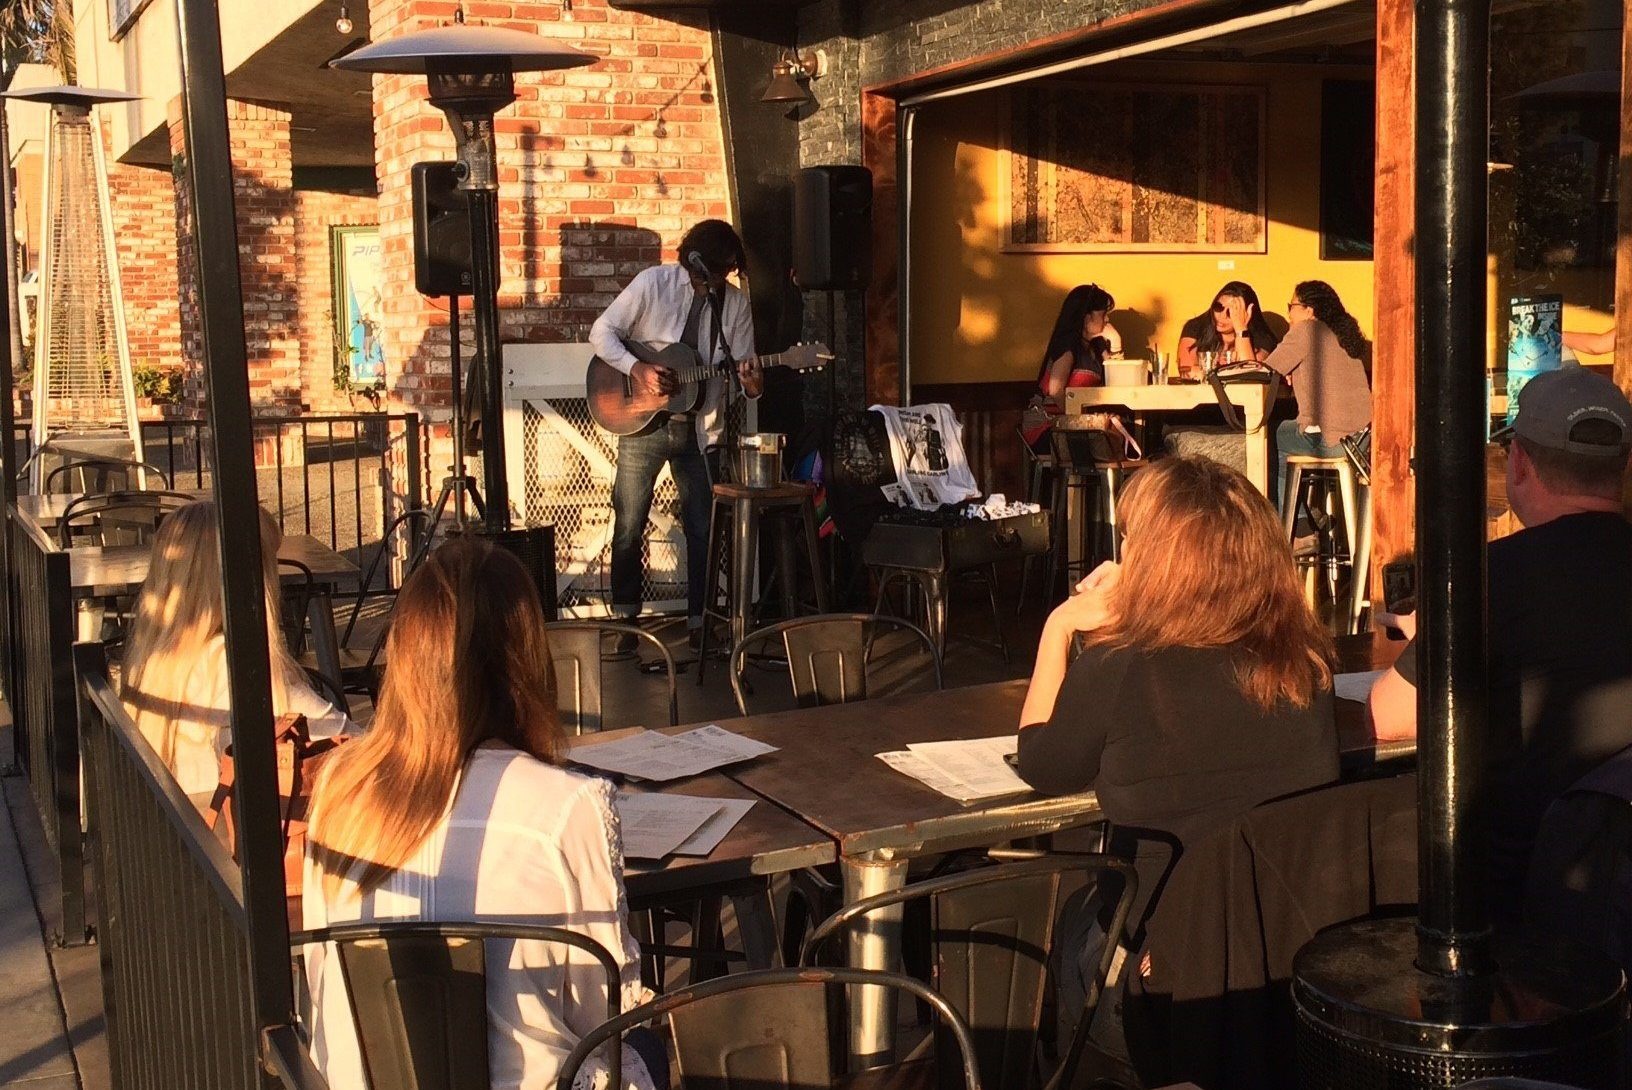 Mission Ave Live Music